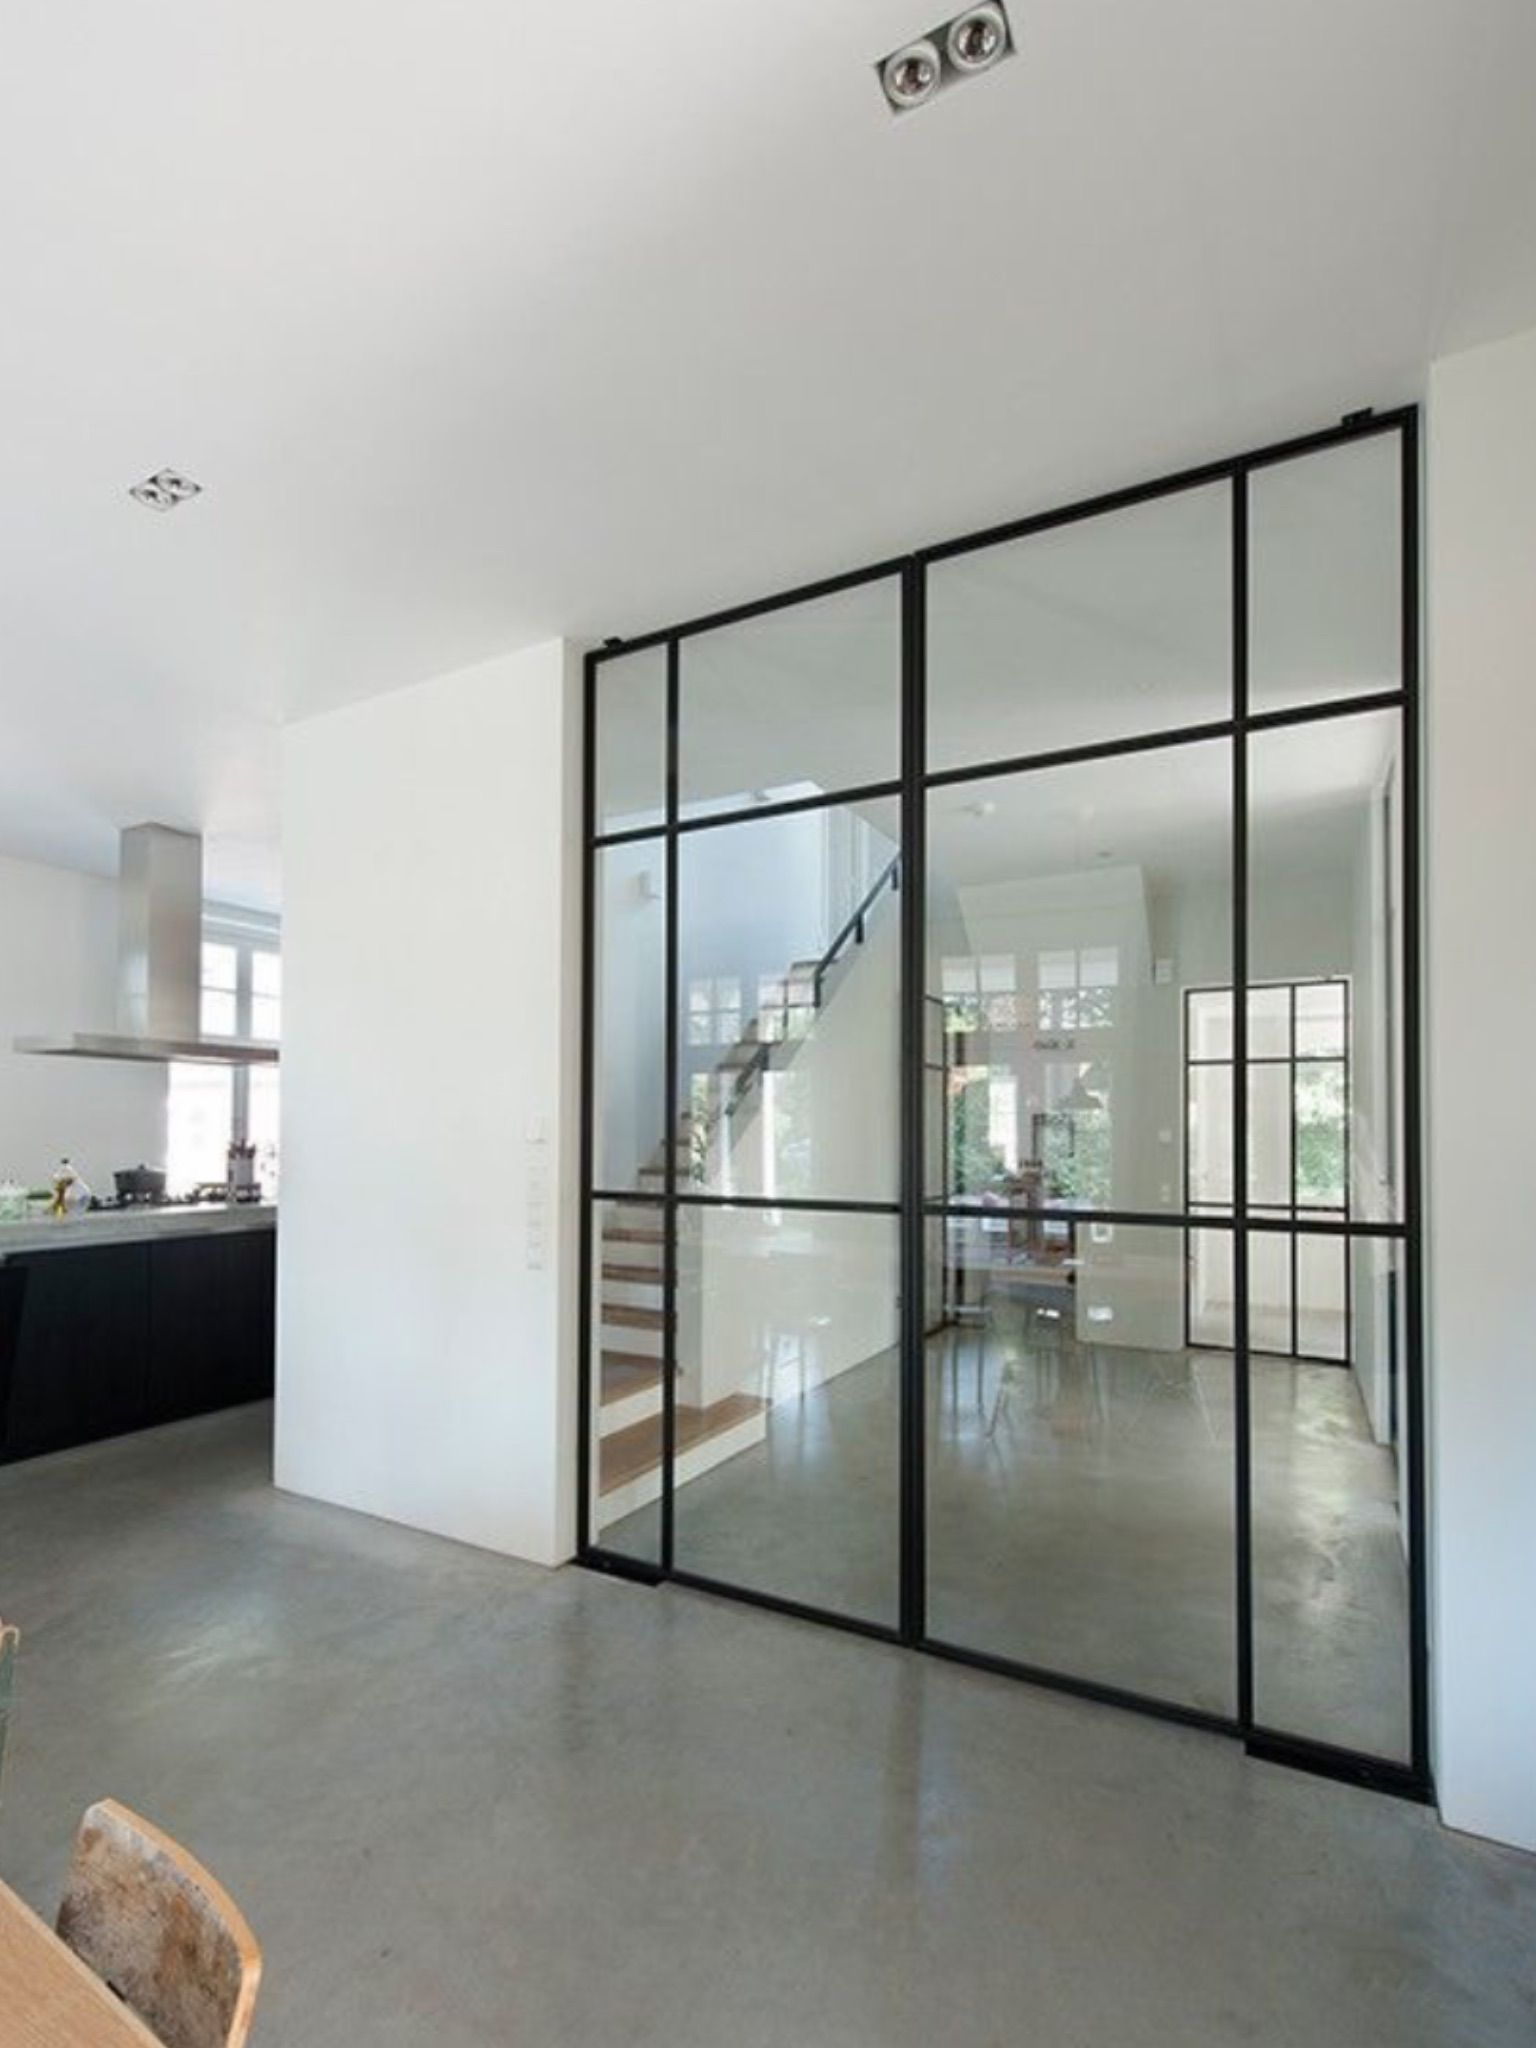 Add Door Frames Between Rooms For (Modern) Architecture